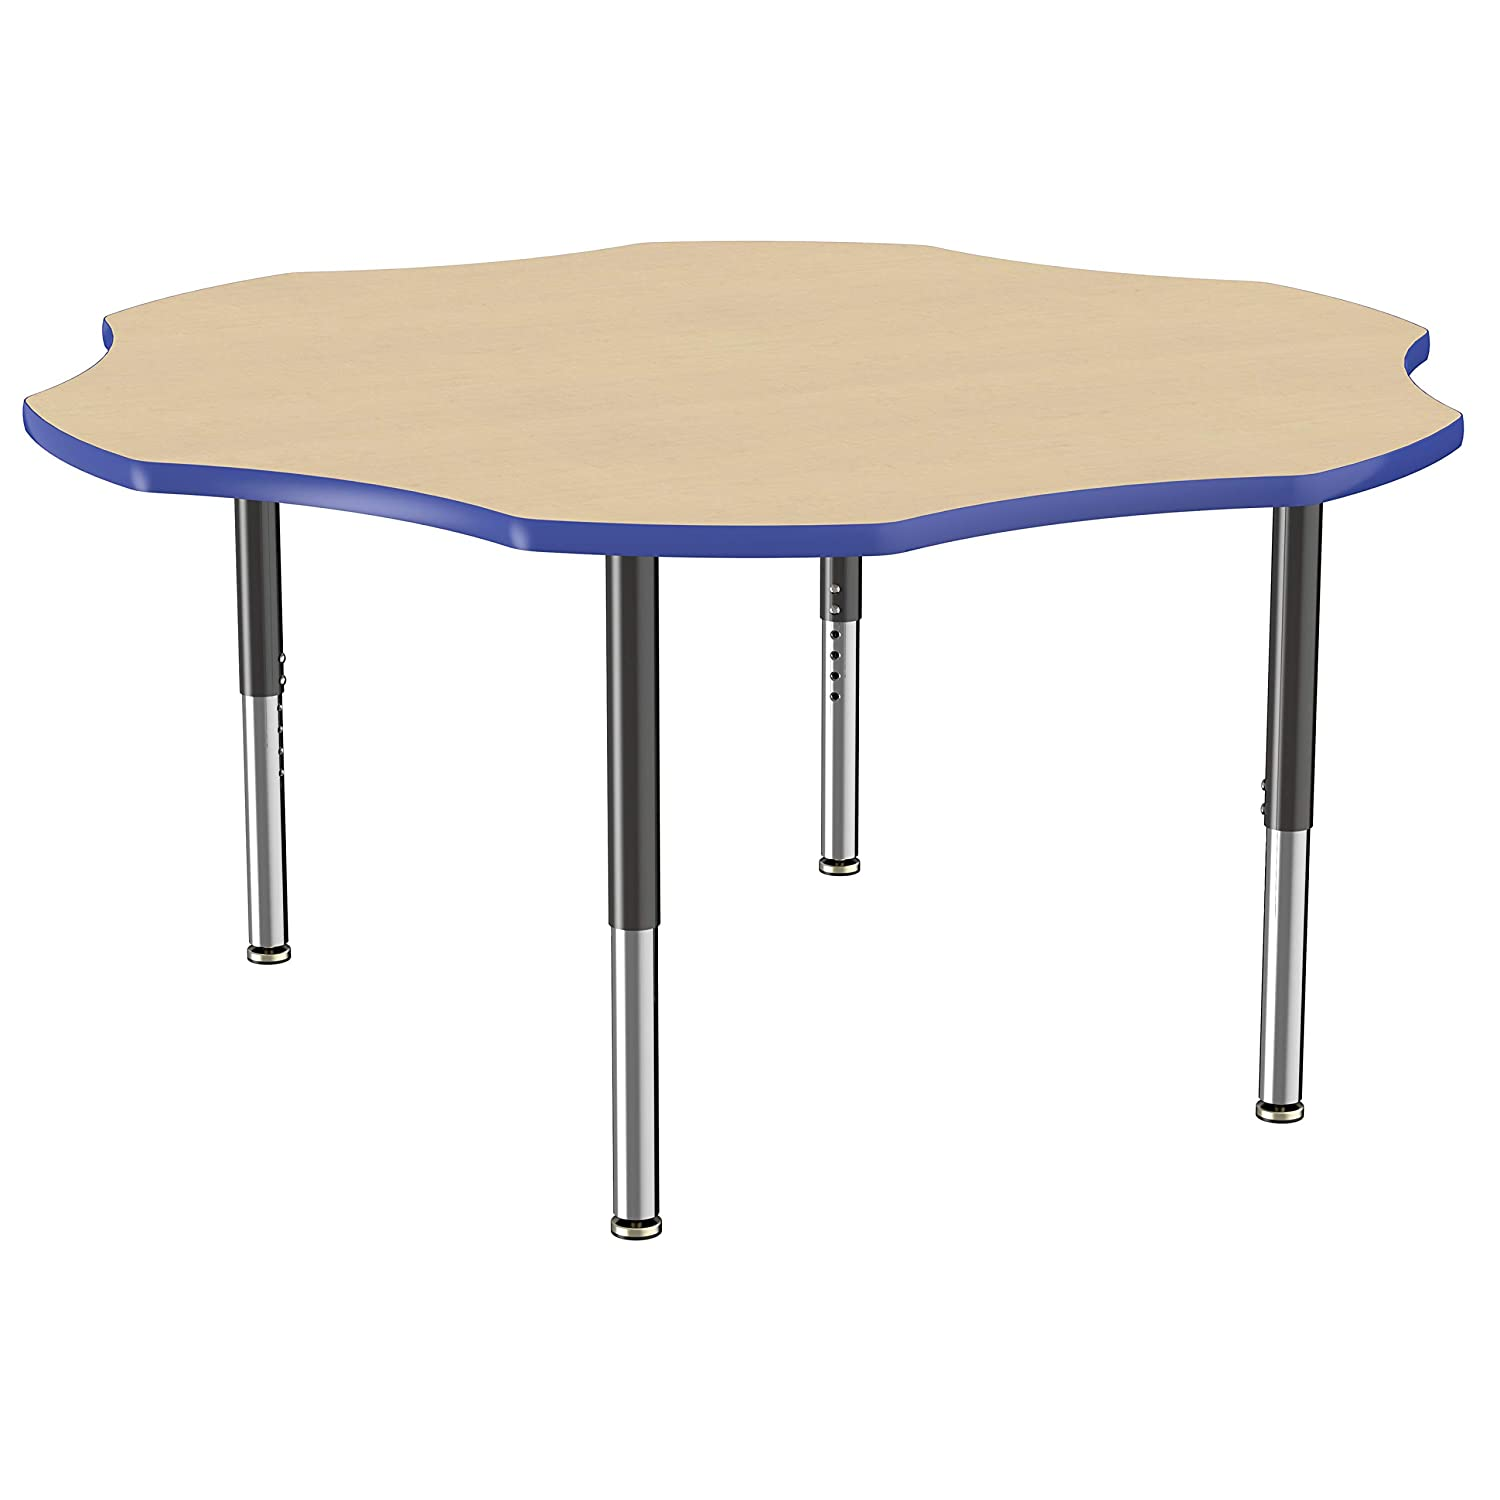 FDP Mobile Flower Activity School and Office Table (60 inch), Super Legs with Glides and Casters for Collaborative Seating Environments, Adjustable Height 19-30 inches - Maple Top and Blue Edge